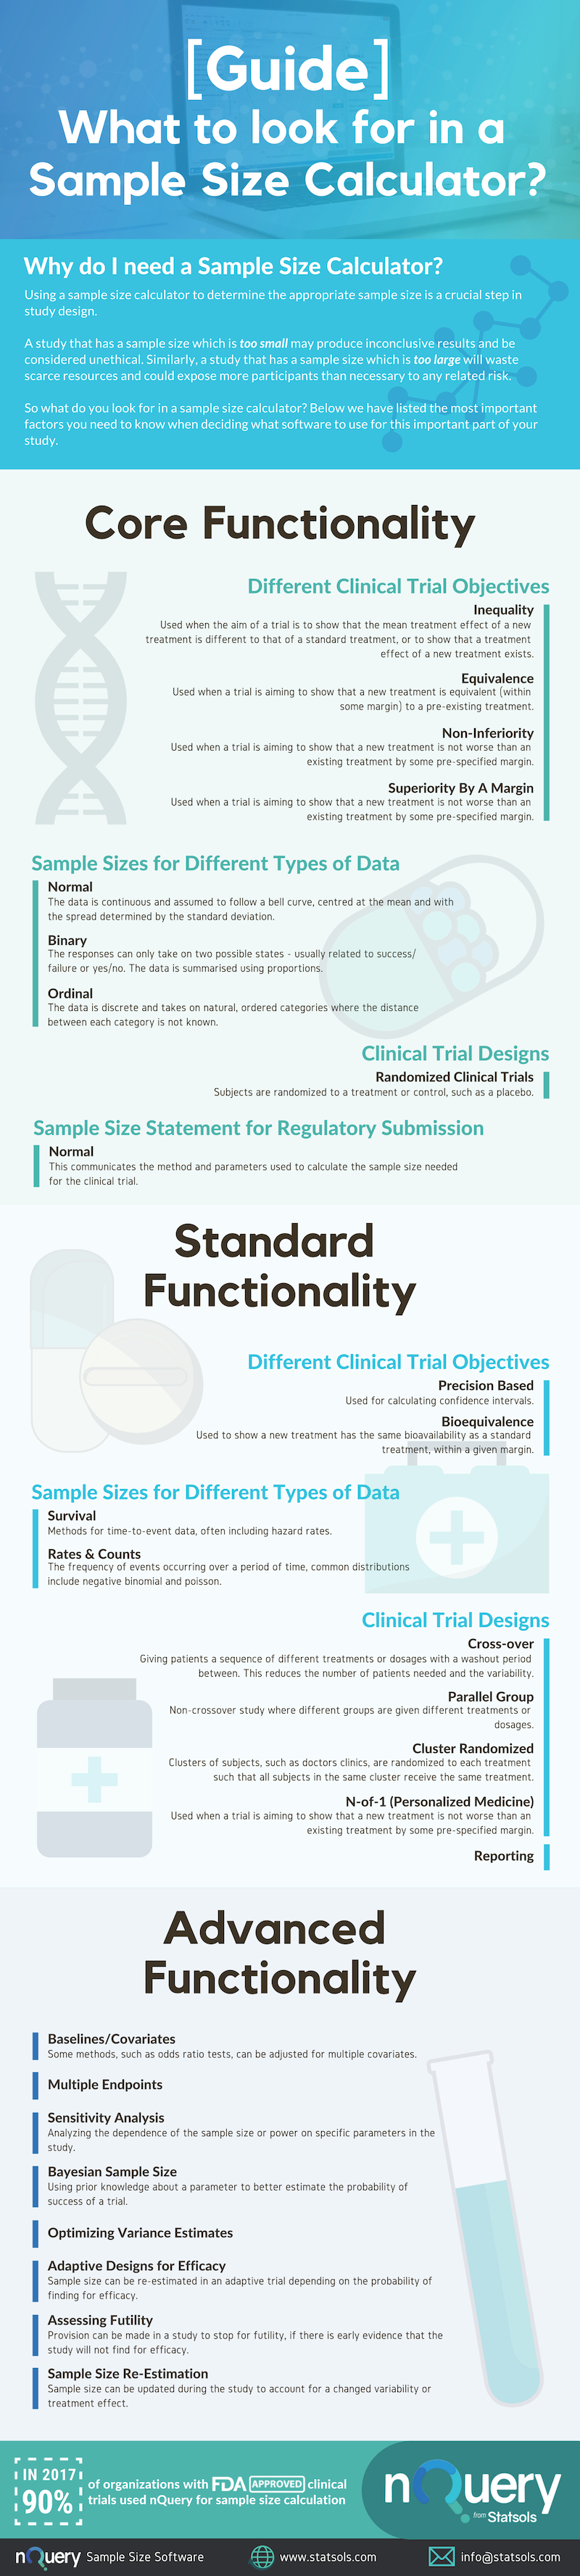 What to look for in a sample size calculator - Infographic Guide